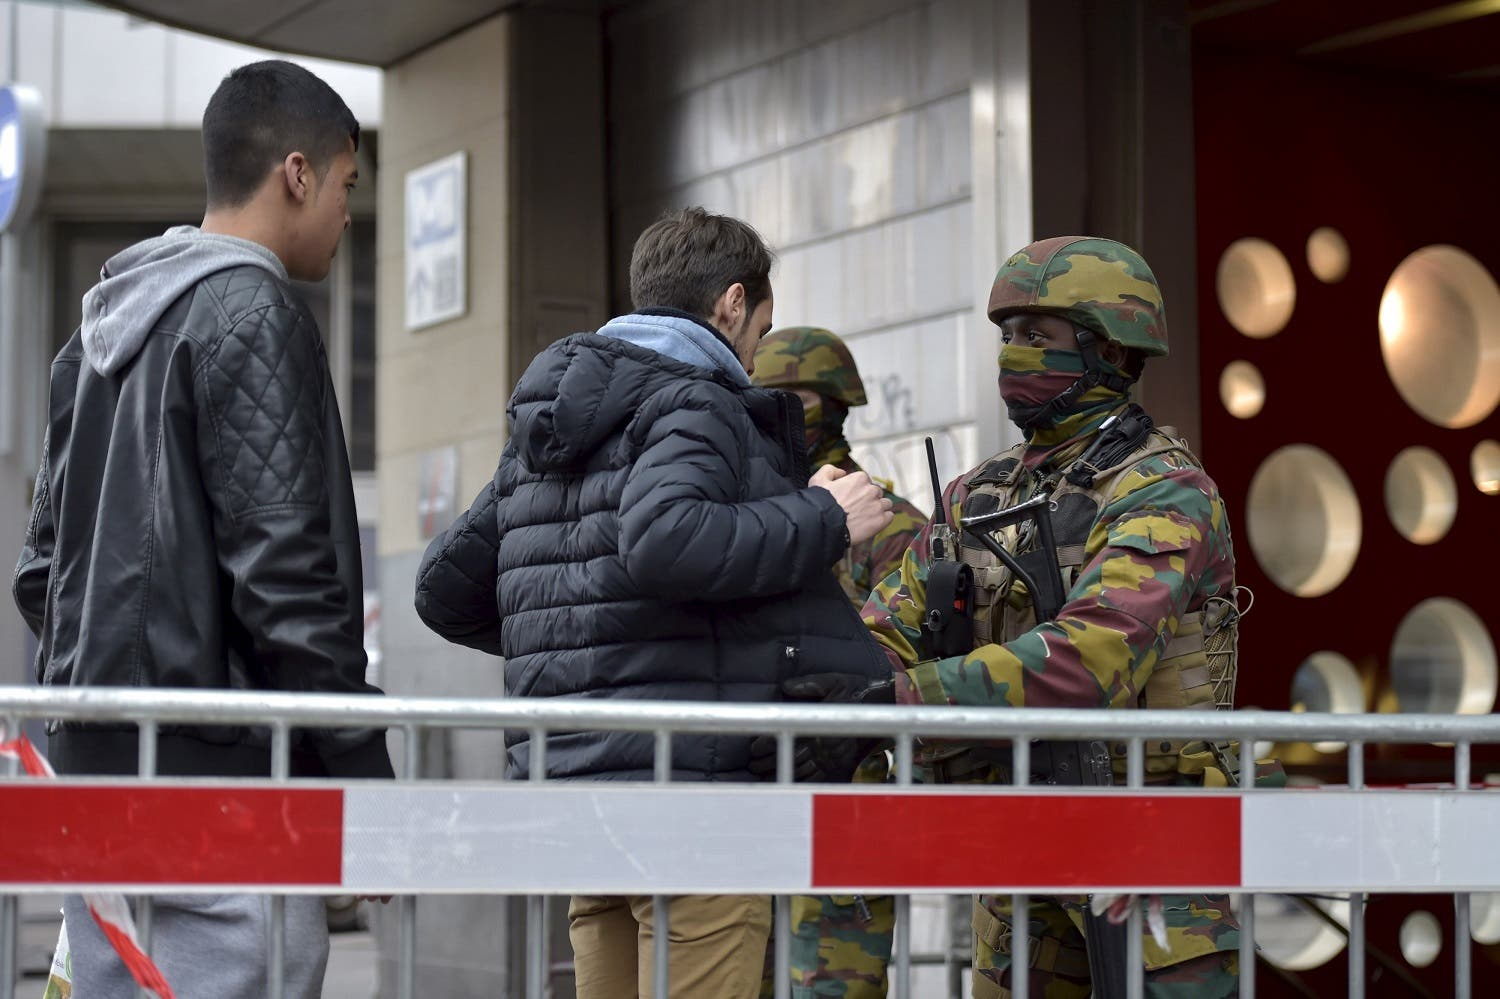 Belgian troops search people entering a subway station following Tuesday's bomb attacks in Brussels, Belgium, March 23, 2016. REUTERS